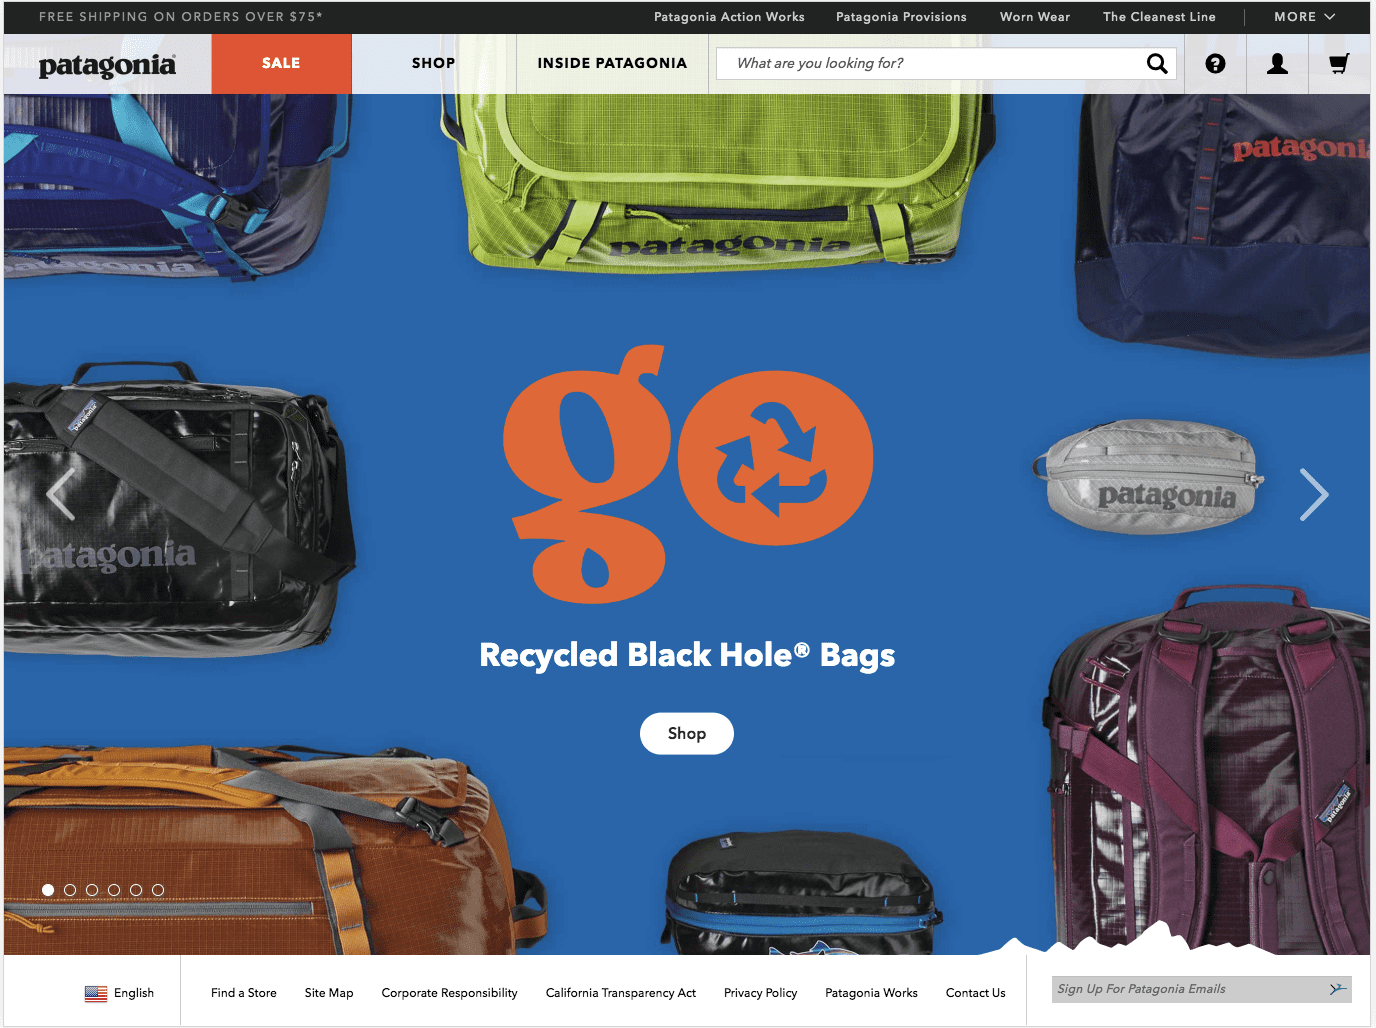 Go Recycled black hole bags. website samples, Tribu insights